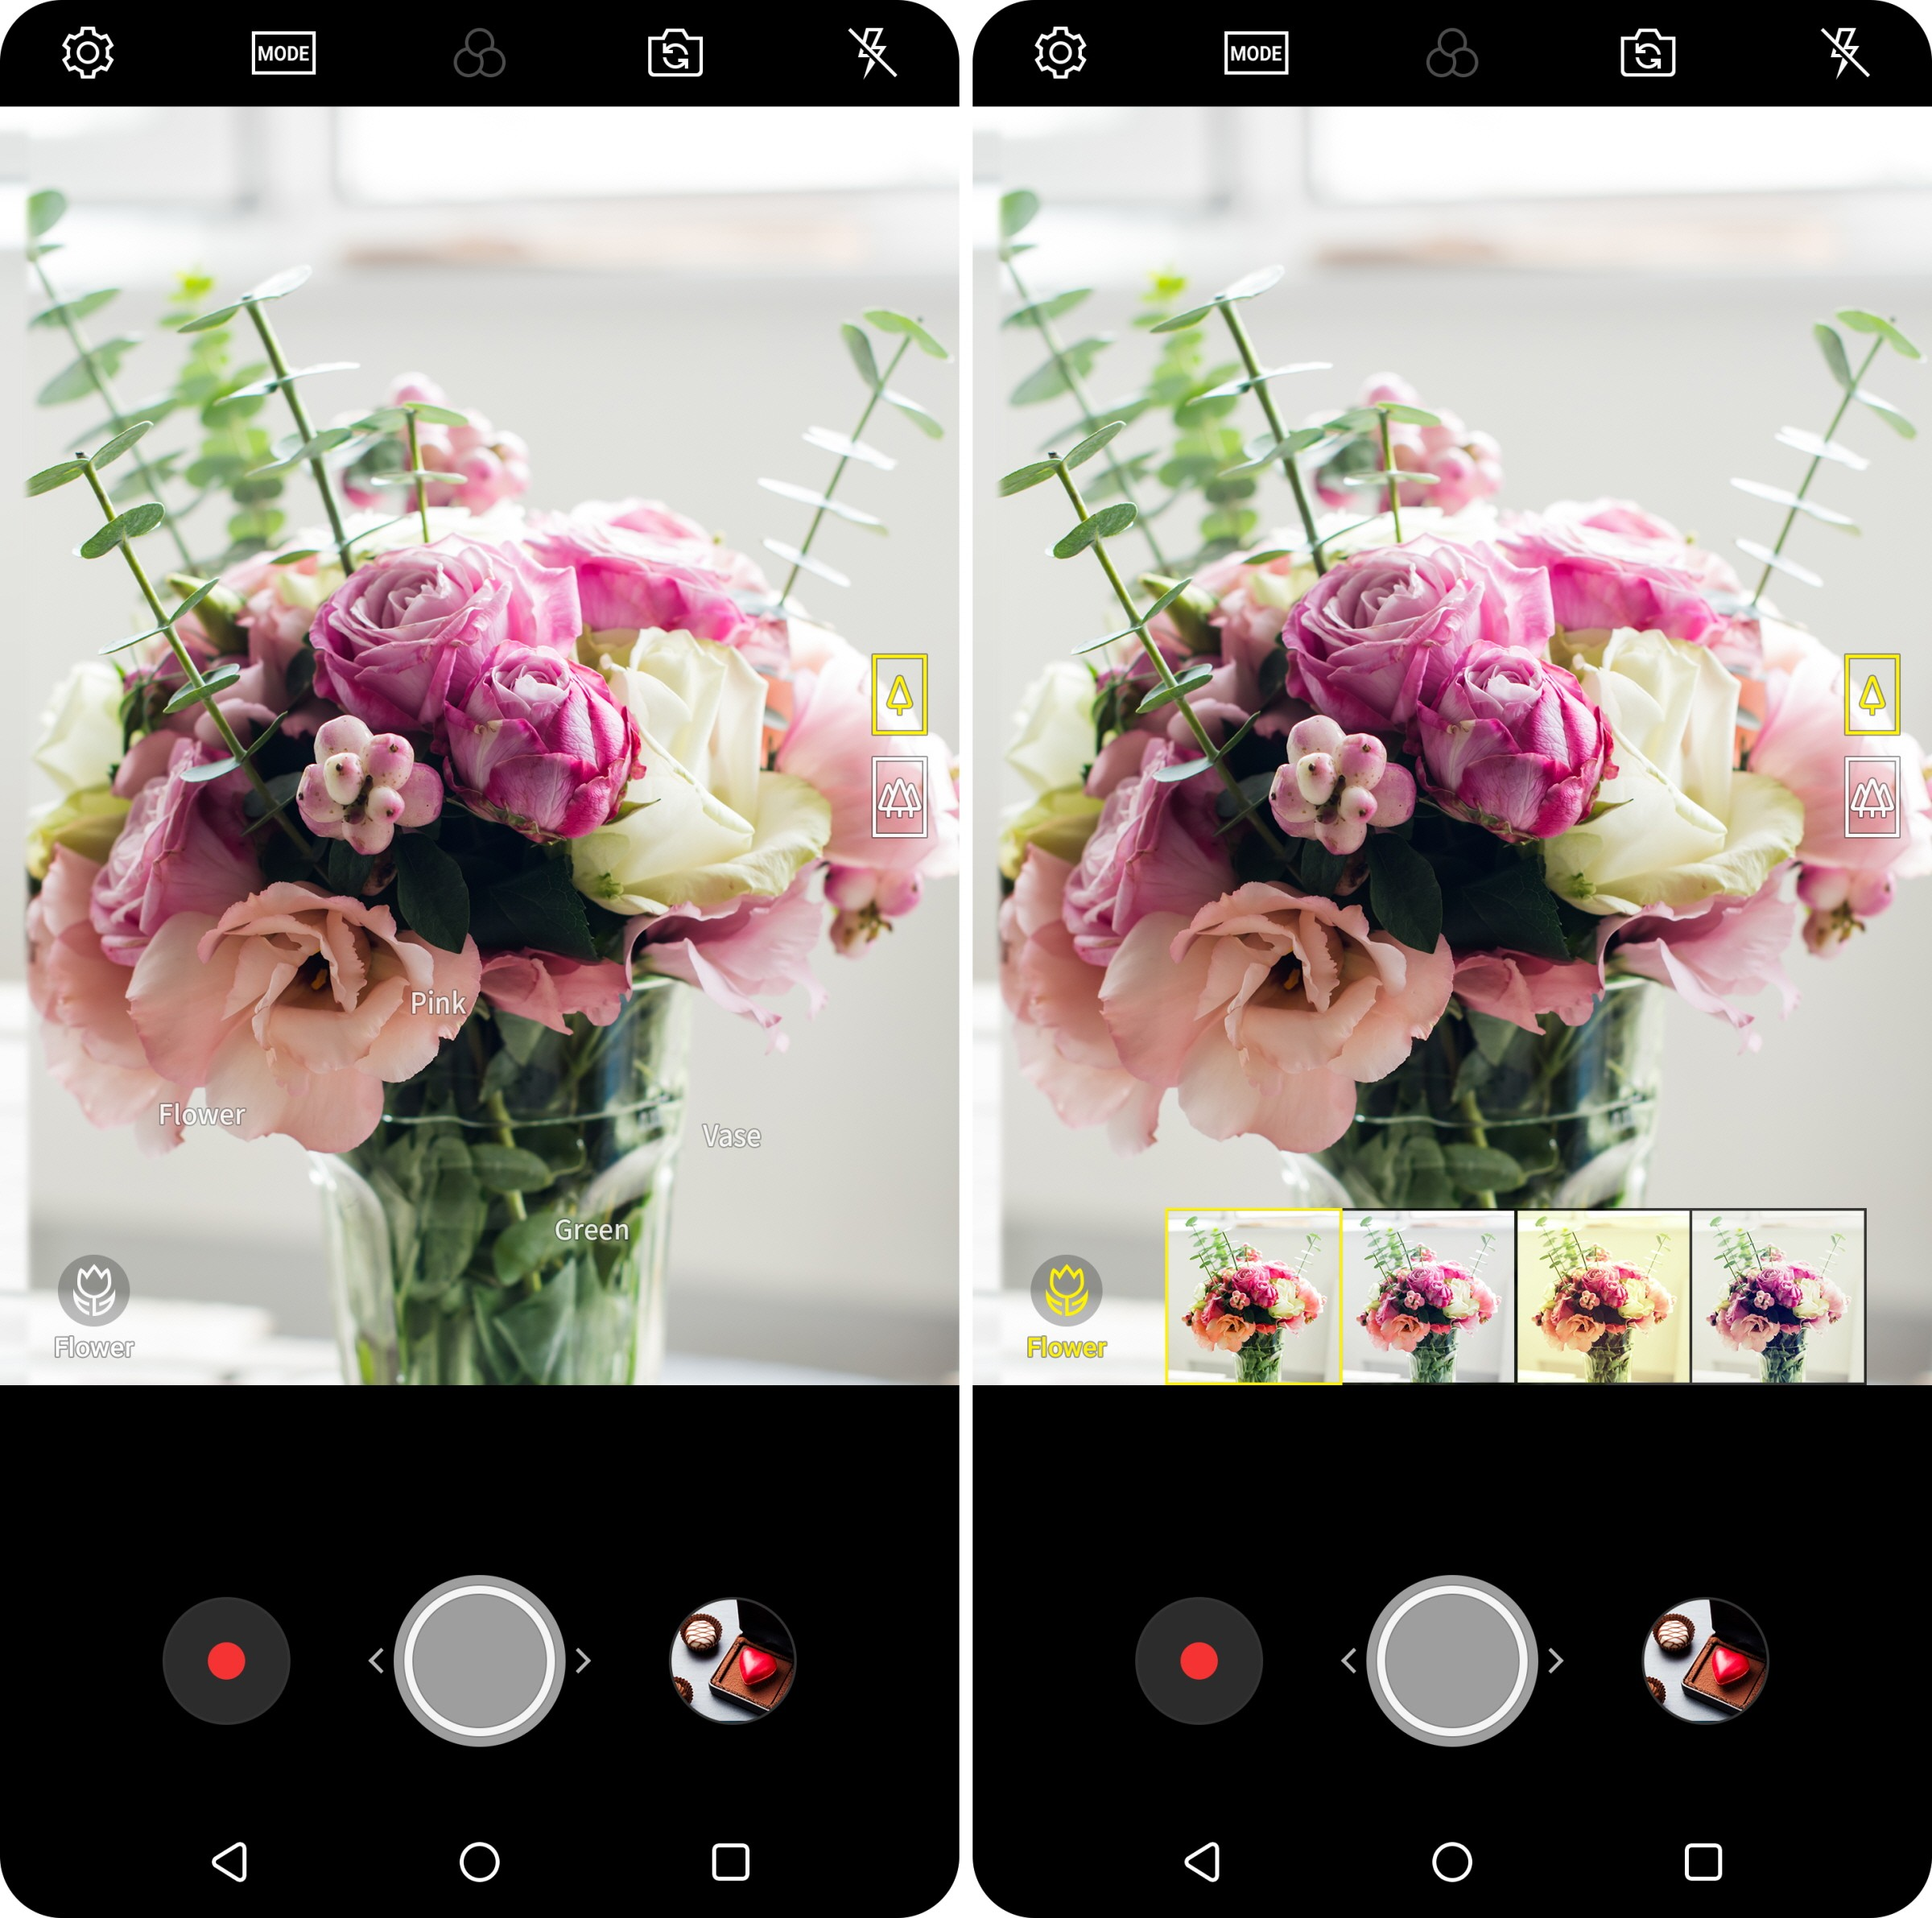 Screenshot of the LG V30's Vision AI, which can automatically analyze objects and recommend the best shooting mode